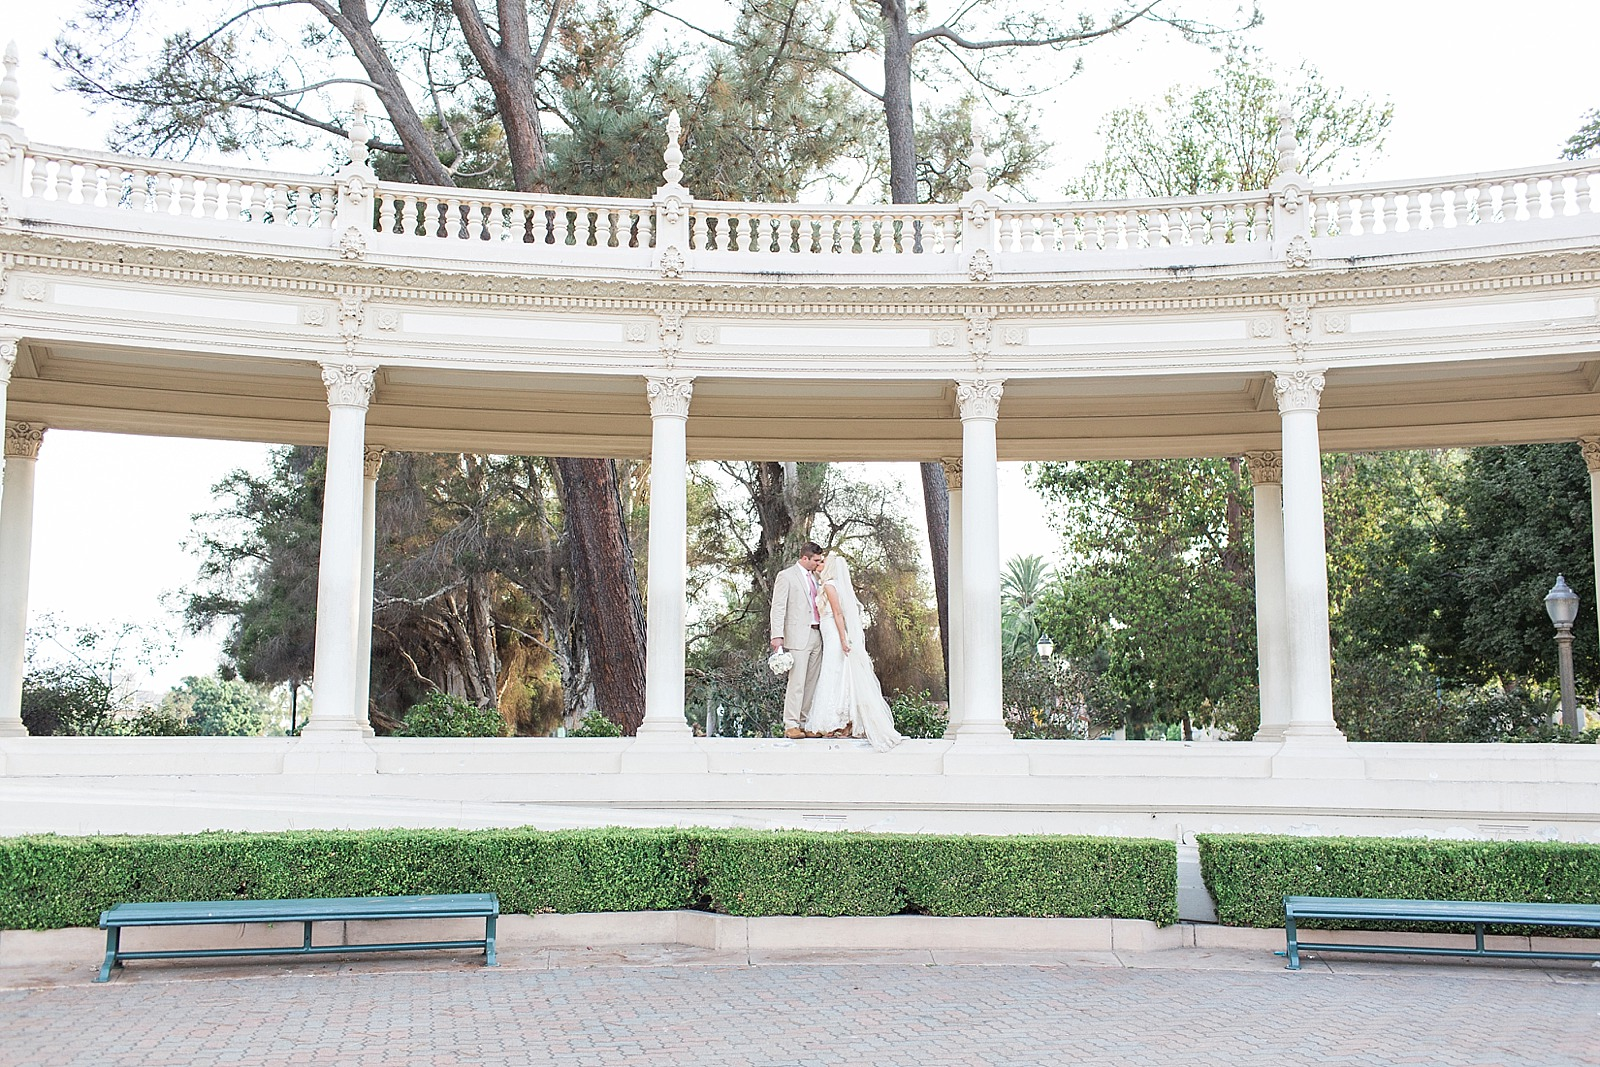 diana-elizabeth-photography-balboa-park-wedding-portraits-photography_0208